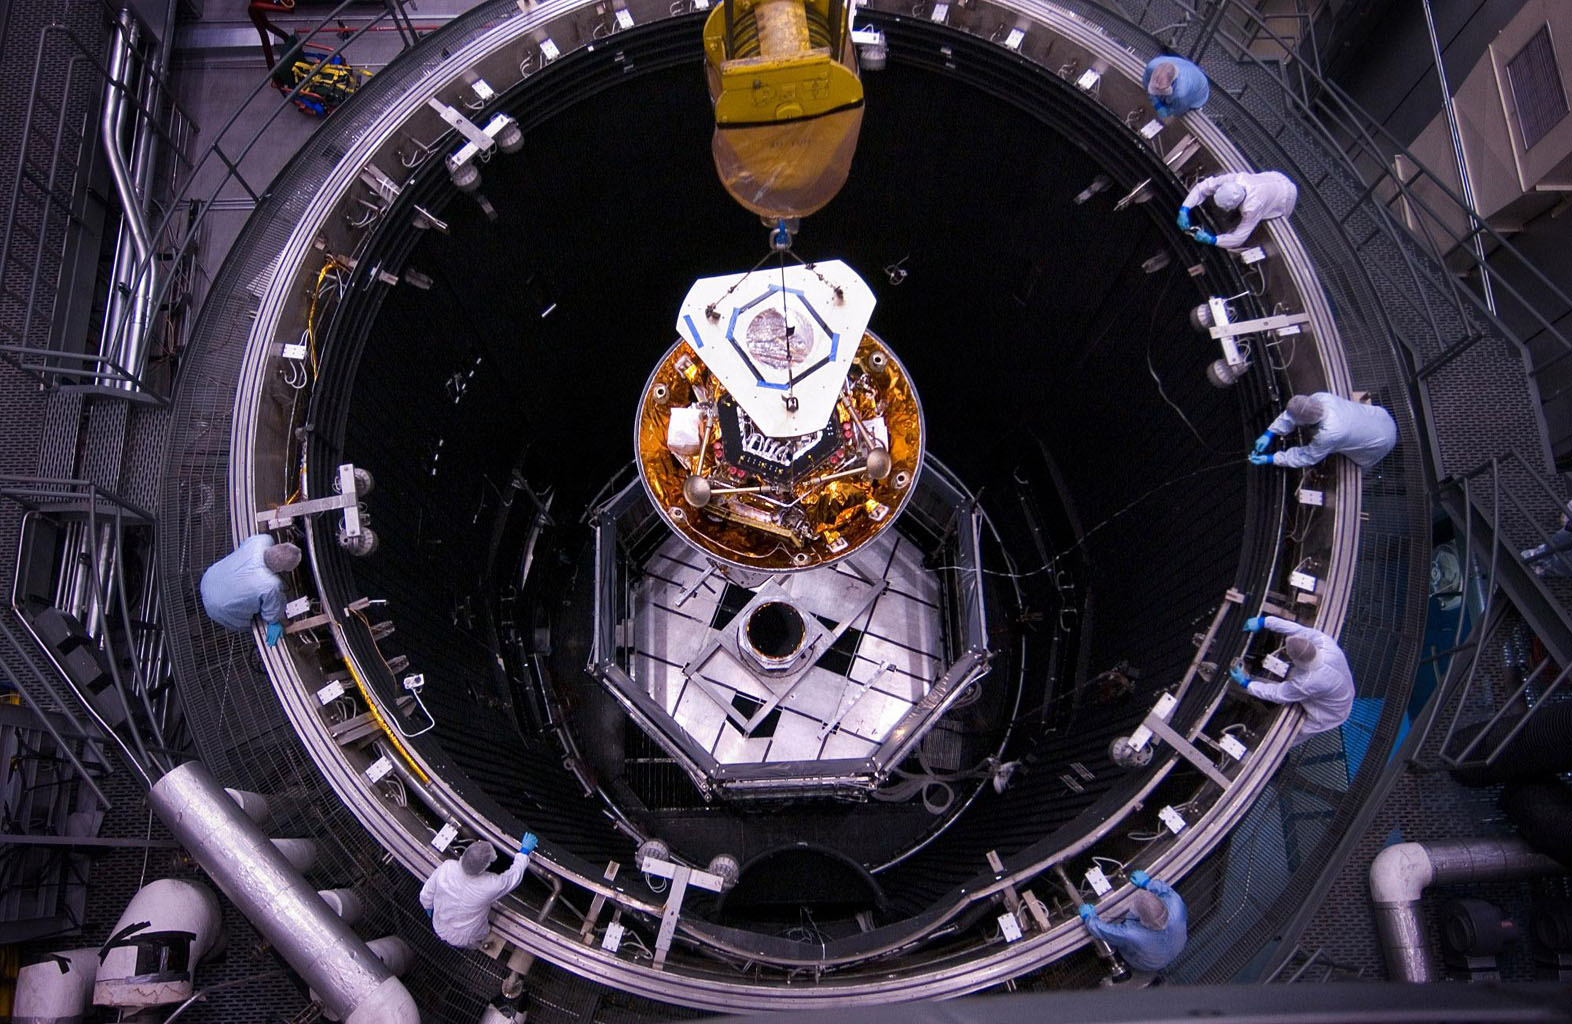 NASA's Phoenix Mars Lander was lowered into a thermal vacuum chamber at Lockheed Martin Space Systems, Denver, in December 2006.